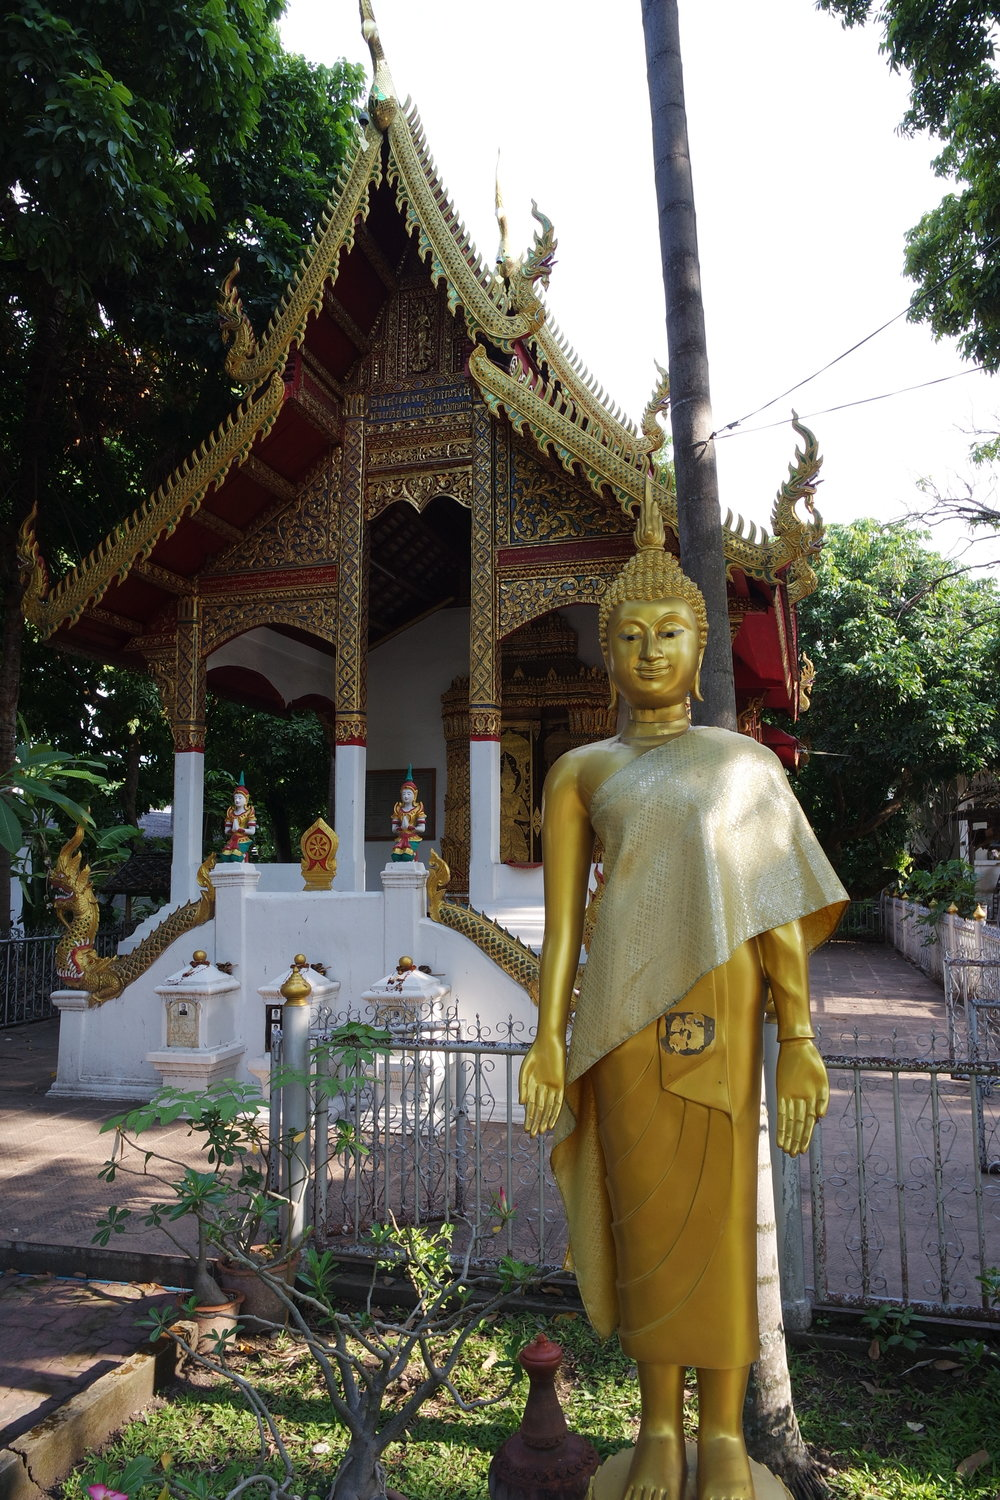 The temple is one of the most popular stops for tourists staying in Chiang Mai